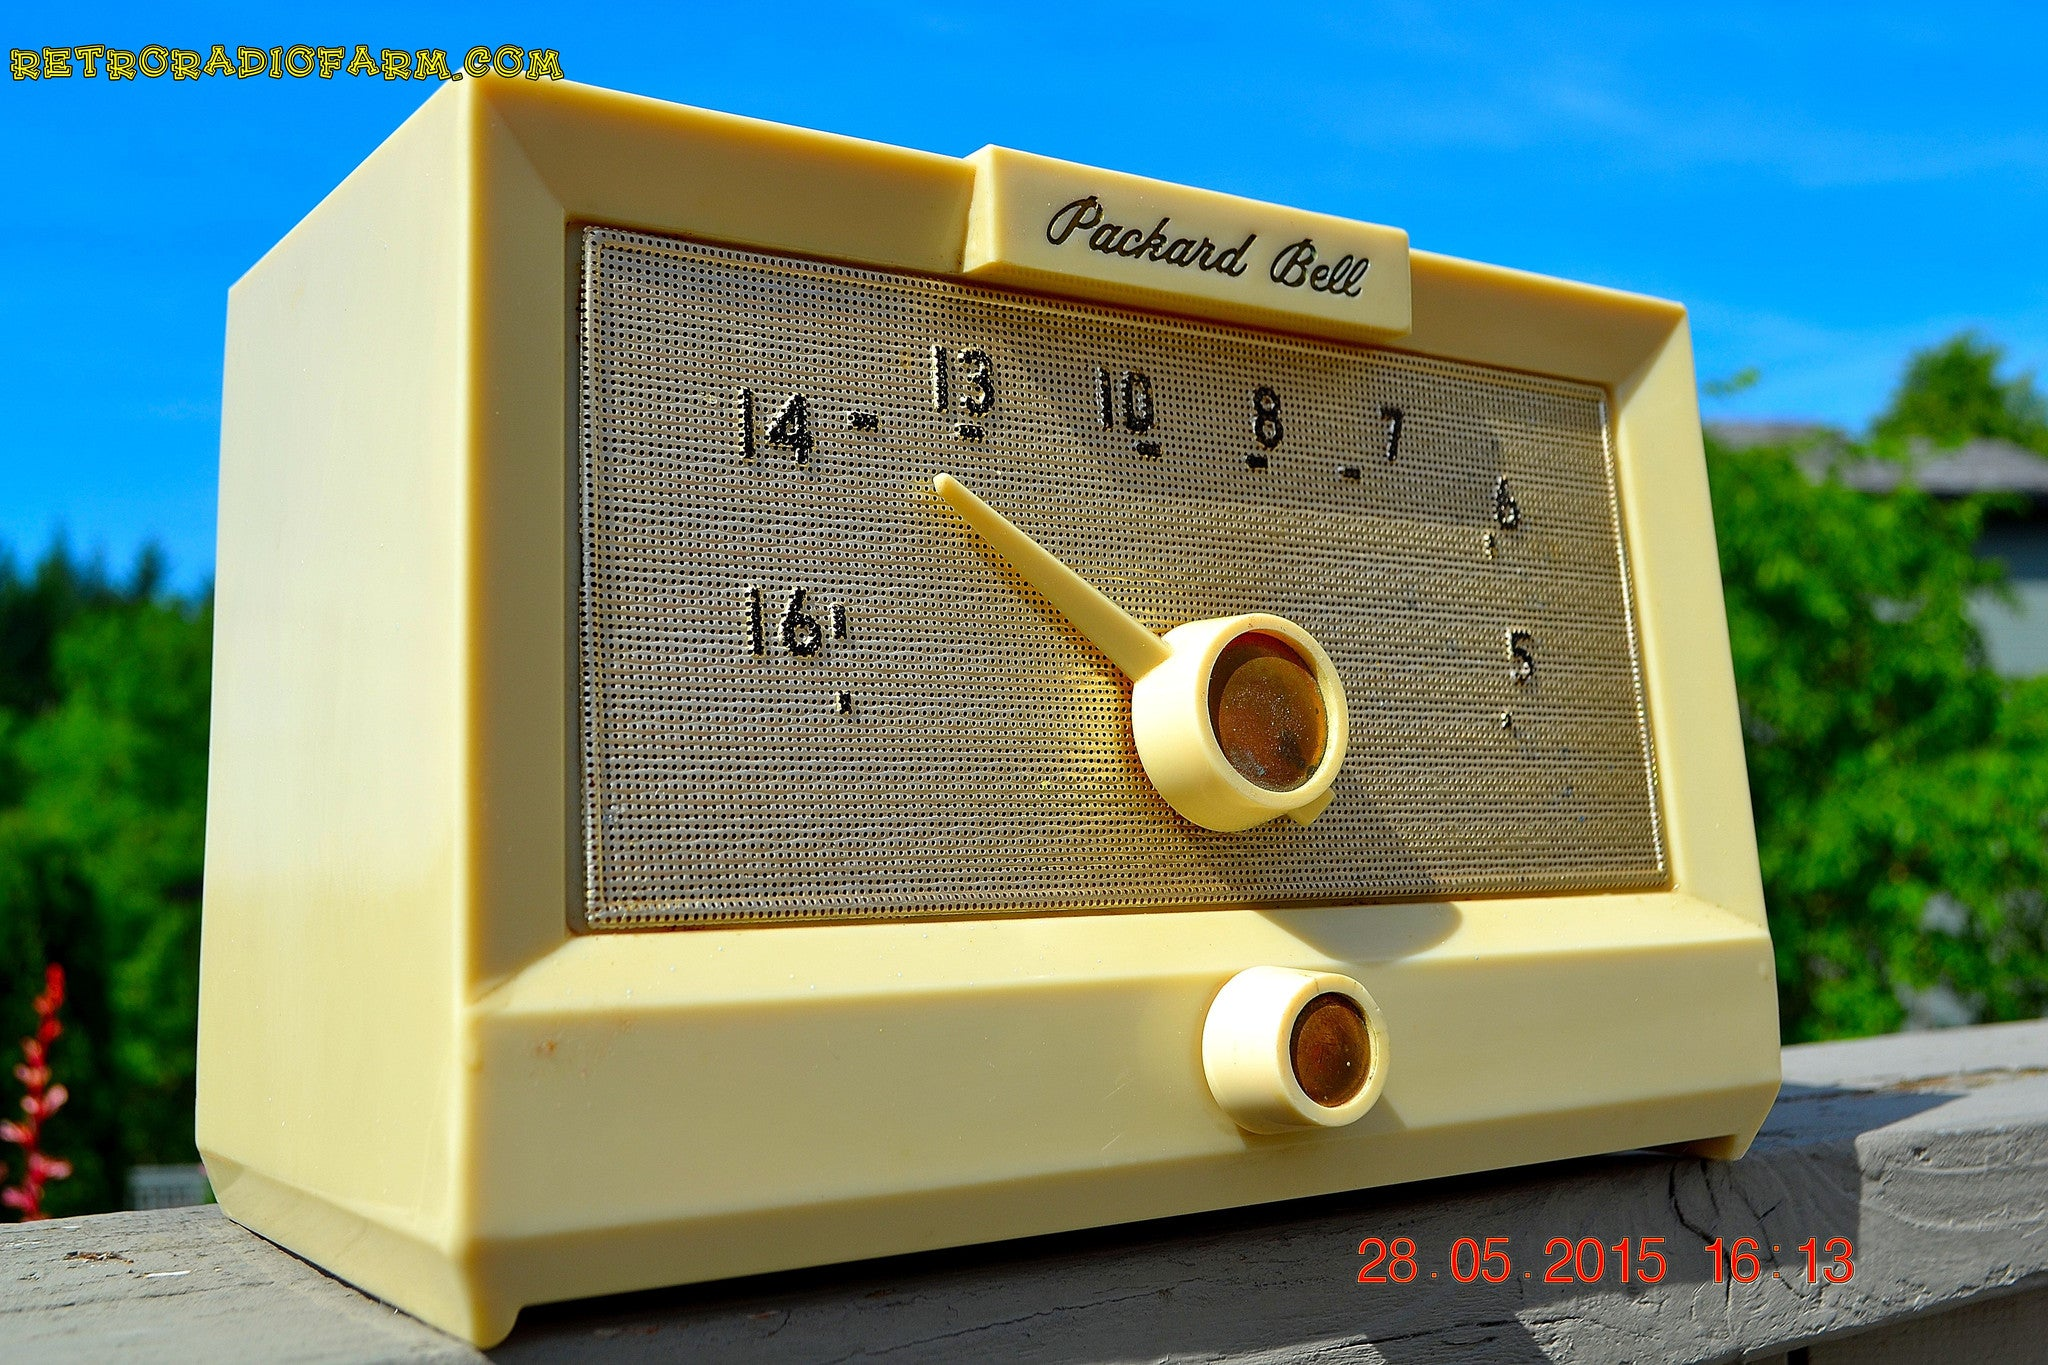 SOLD! - Sept 17, 2015 - IVORY WHITE Retro Jetsons Vintage 1956 Packard Bell 5R1 AM Tube Radio Works! - [product_type} - Packard-Bell - Retro Radio Farm